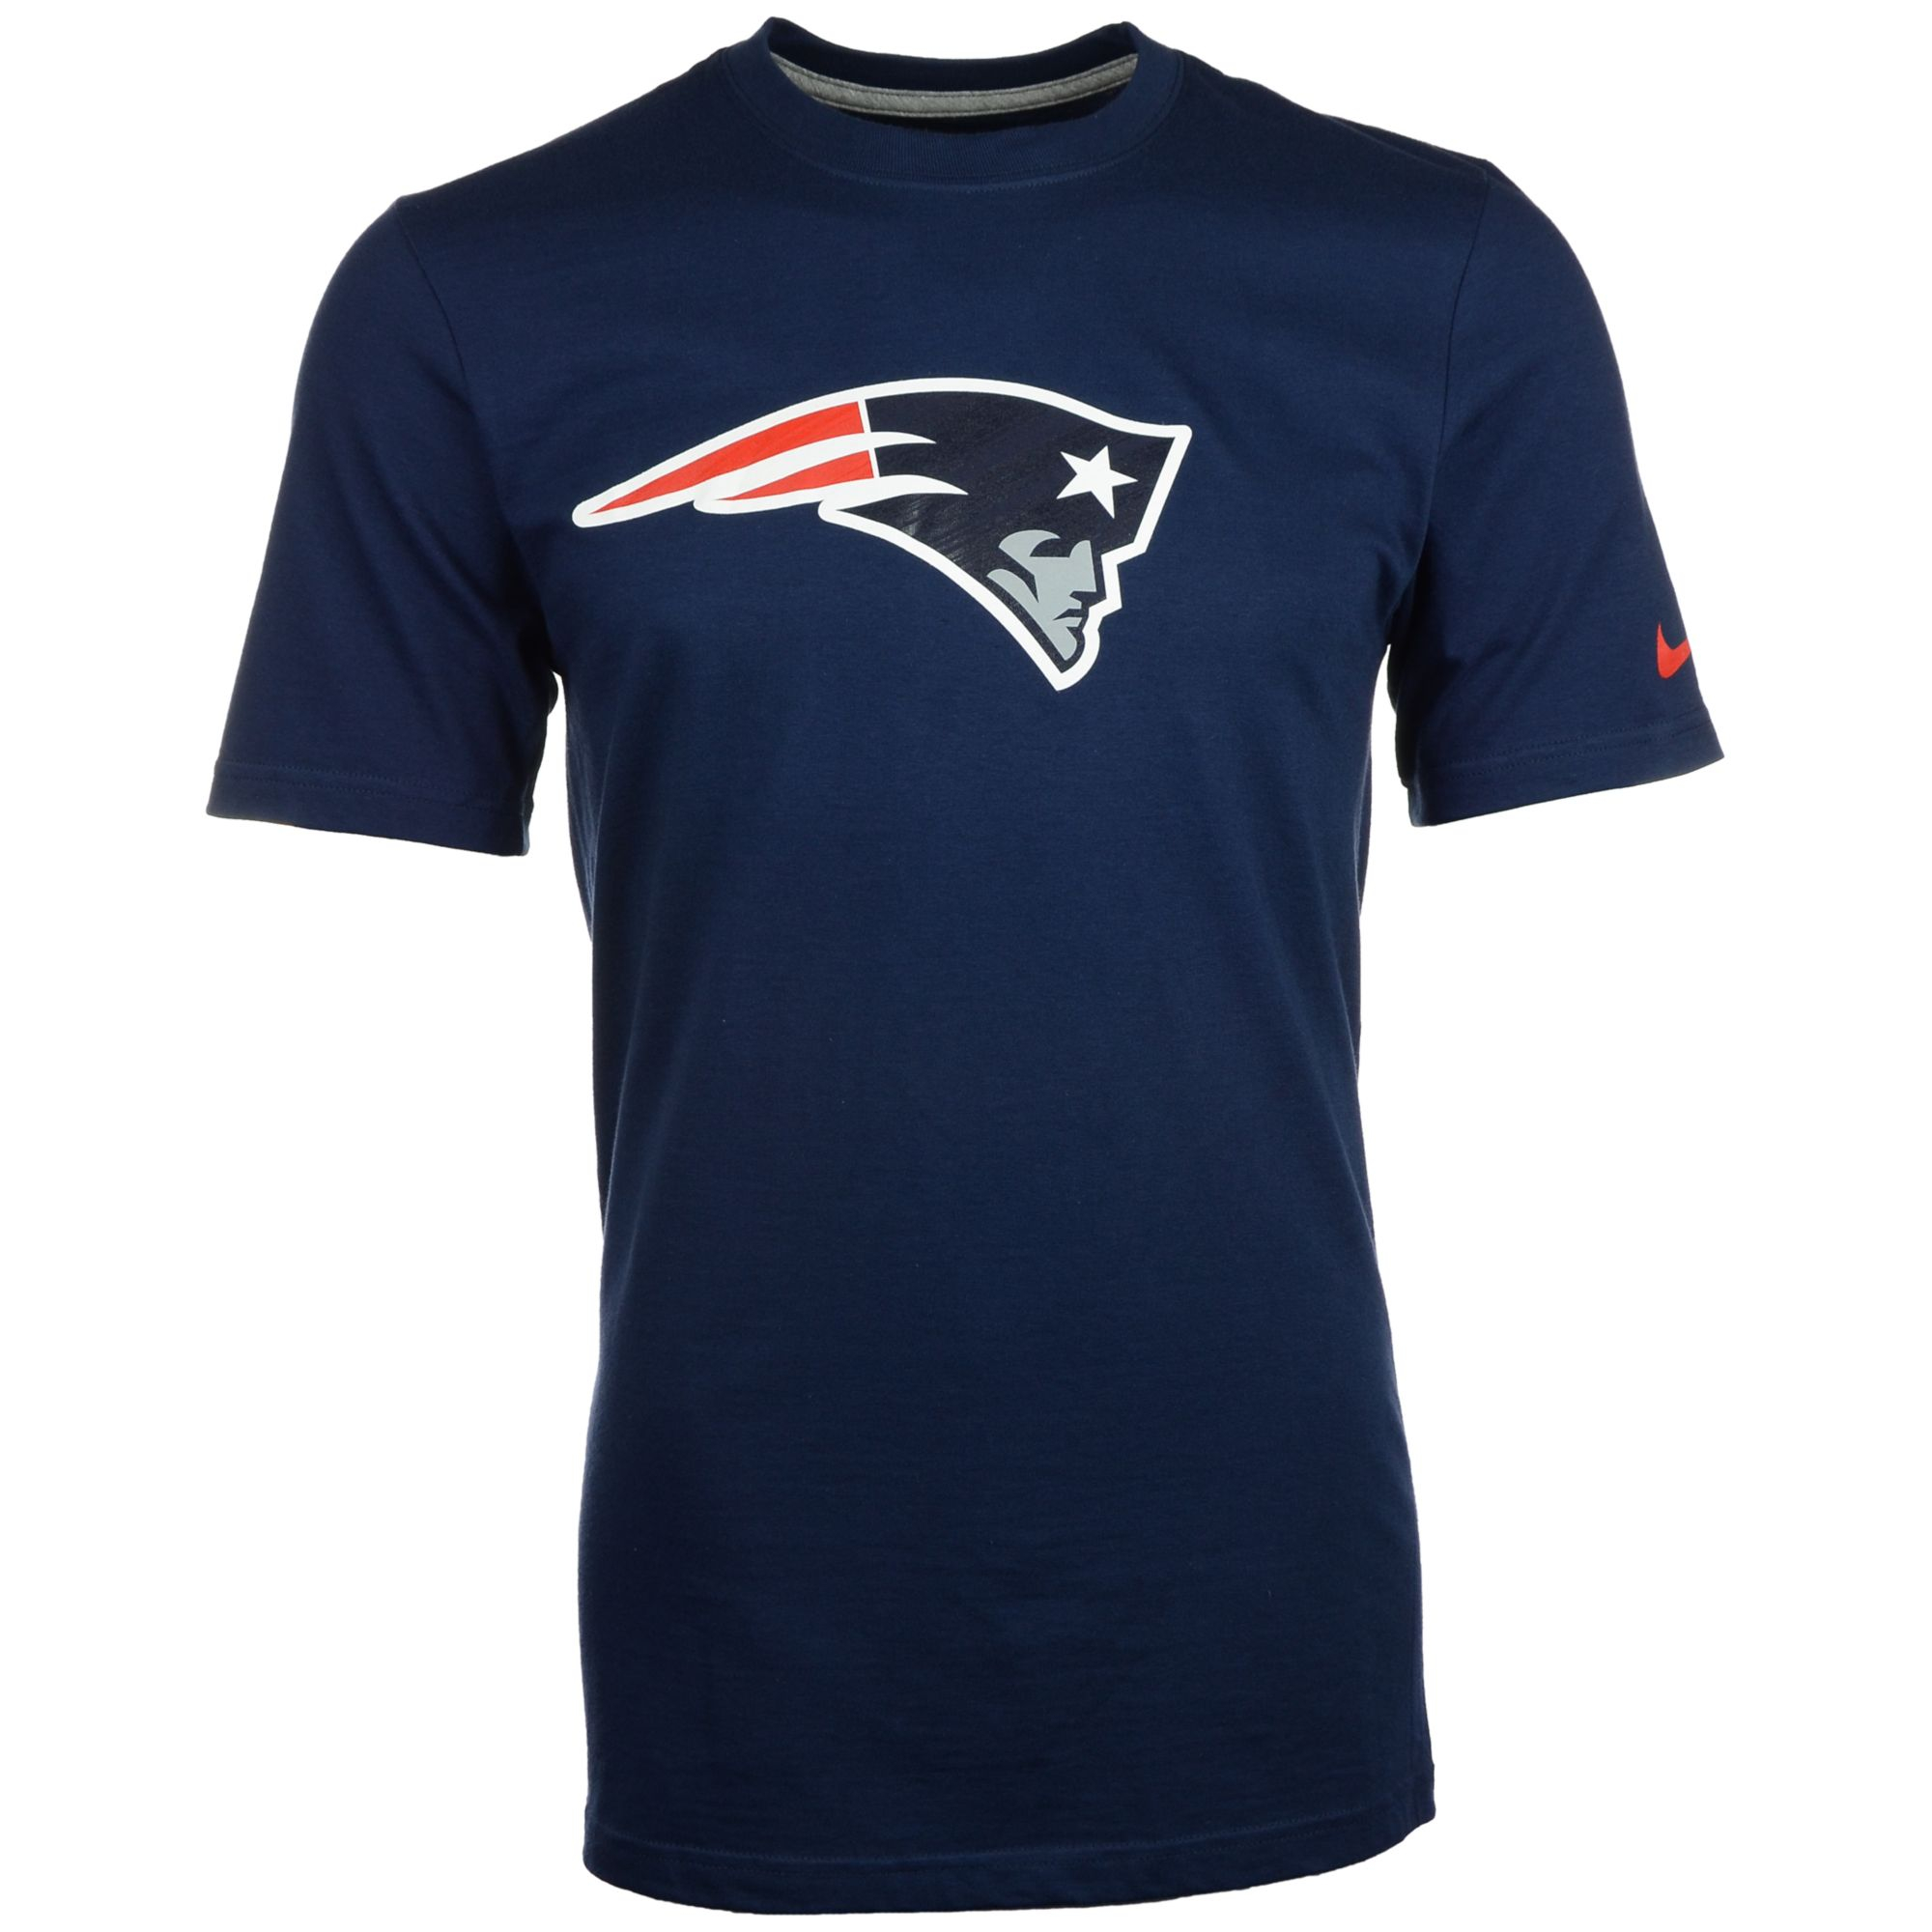 Nike blue men 39 s new england patriots logo t shirt for New england patriots shirts